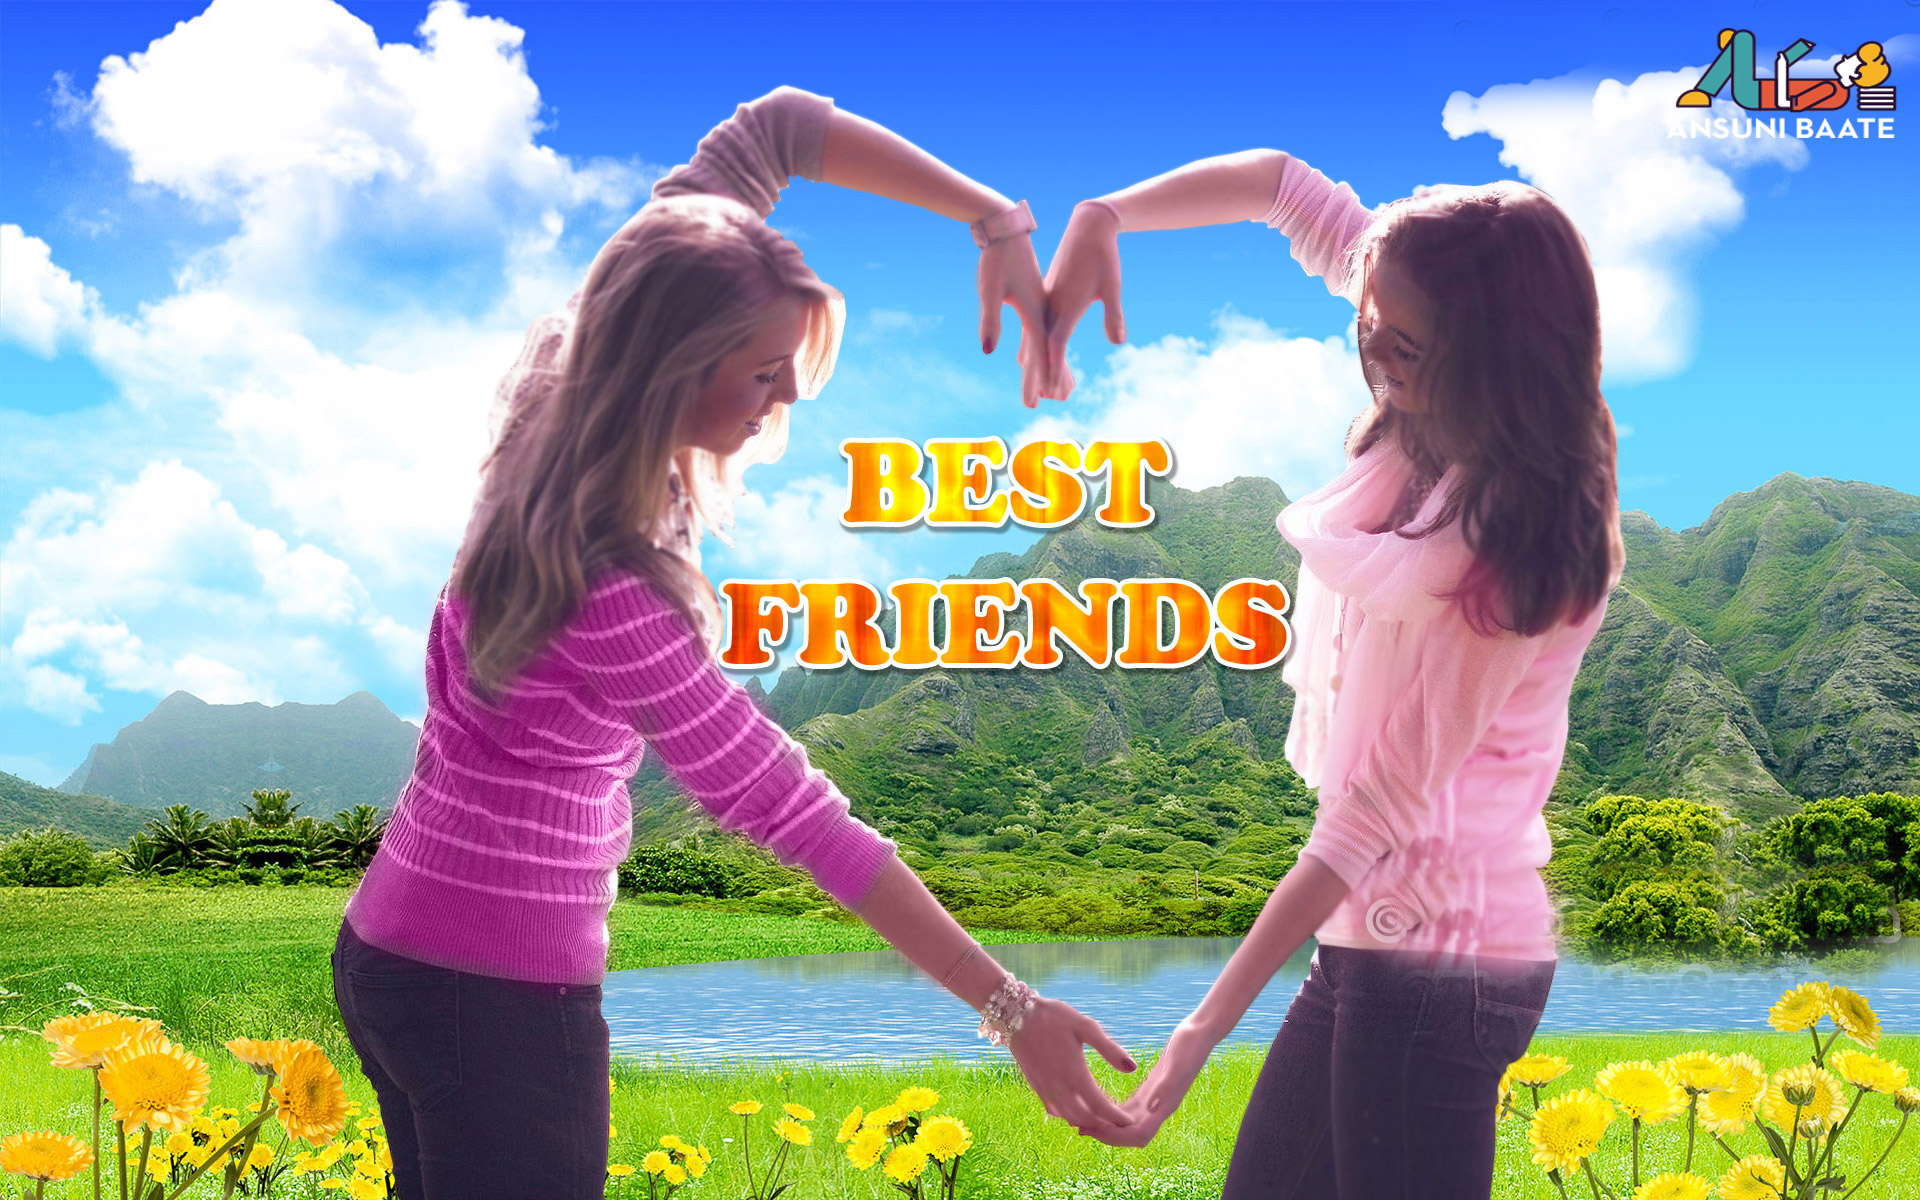 फ्रेंडशिप इमेज वॉलपेपर फोटो फ्री डाउनलोडFriendship Images Full HD Gallery Wallpapers DownloadFriendship Cute Wallpapers Gallery Download